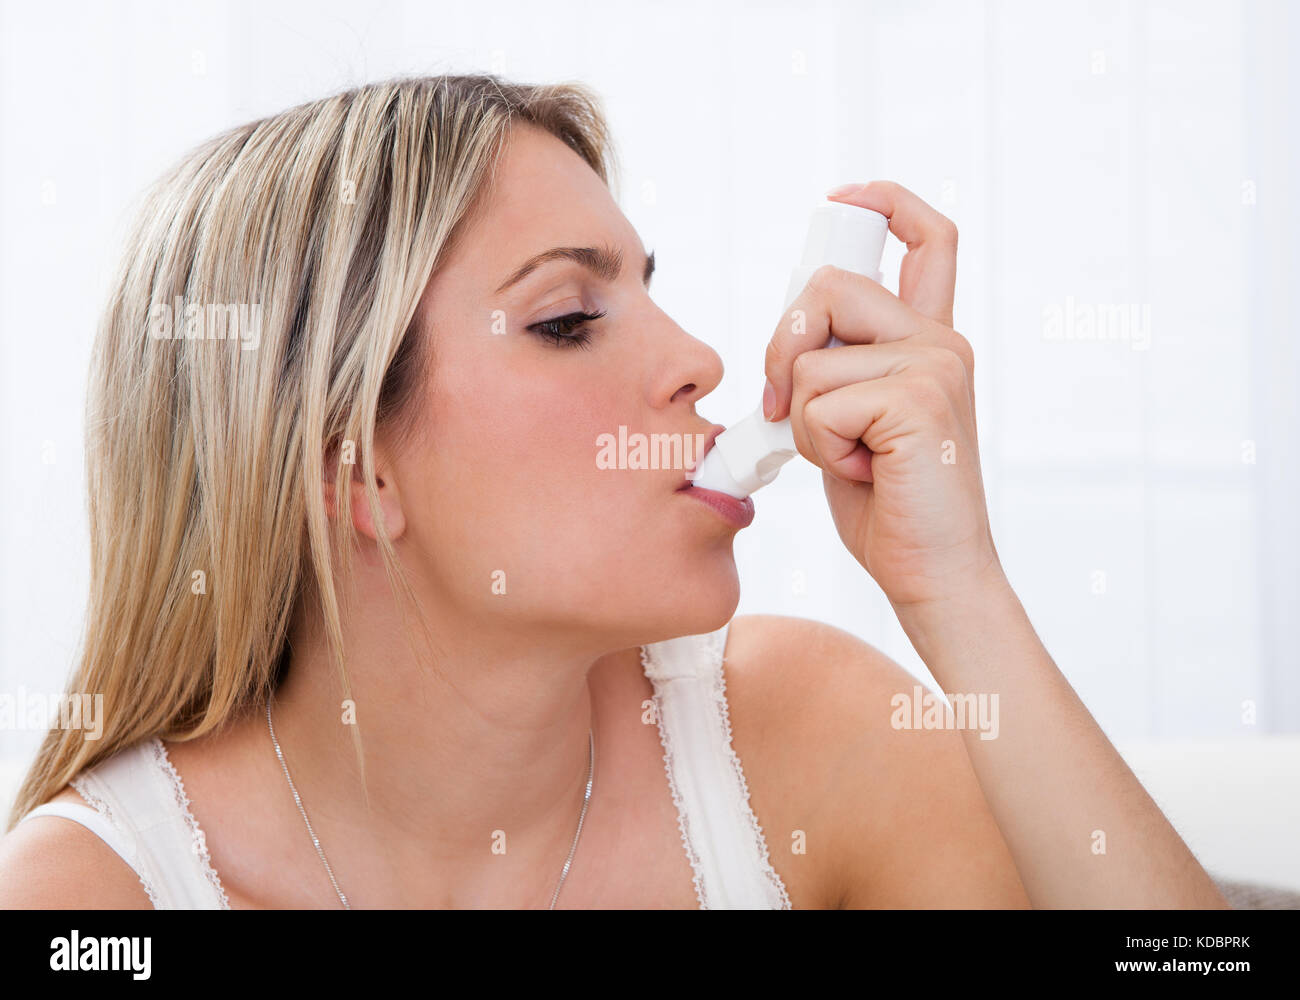 Woman with asthma using an asthma inhaler for preventing attacks - Stock Image